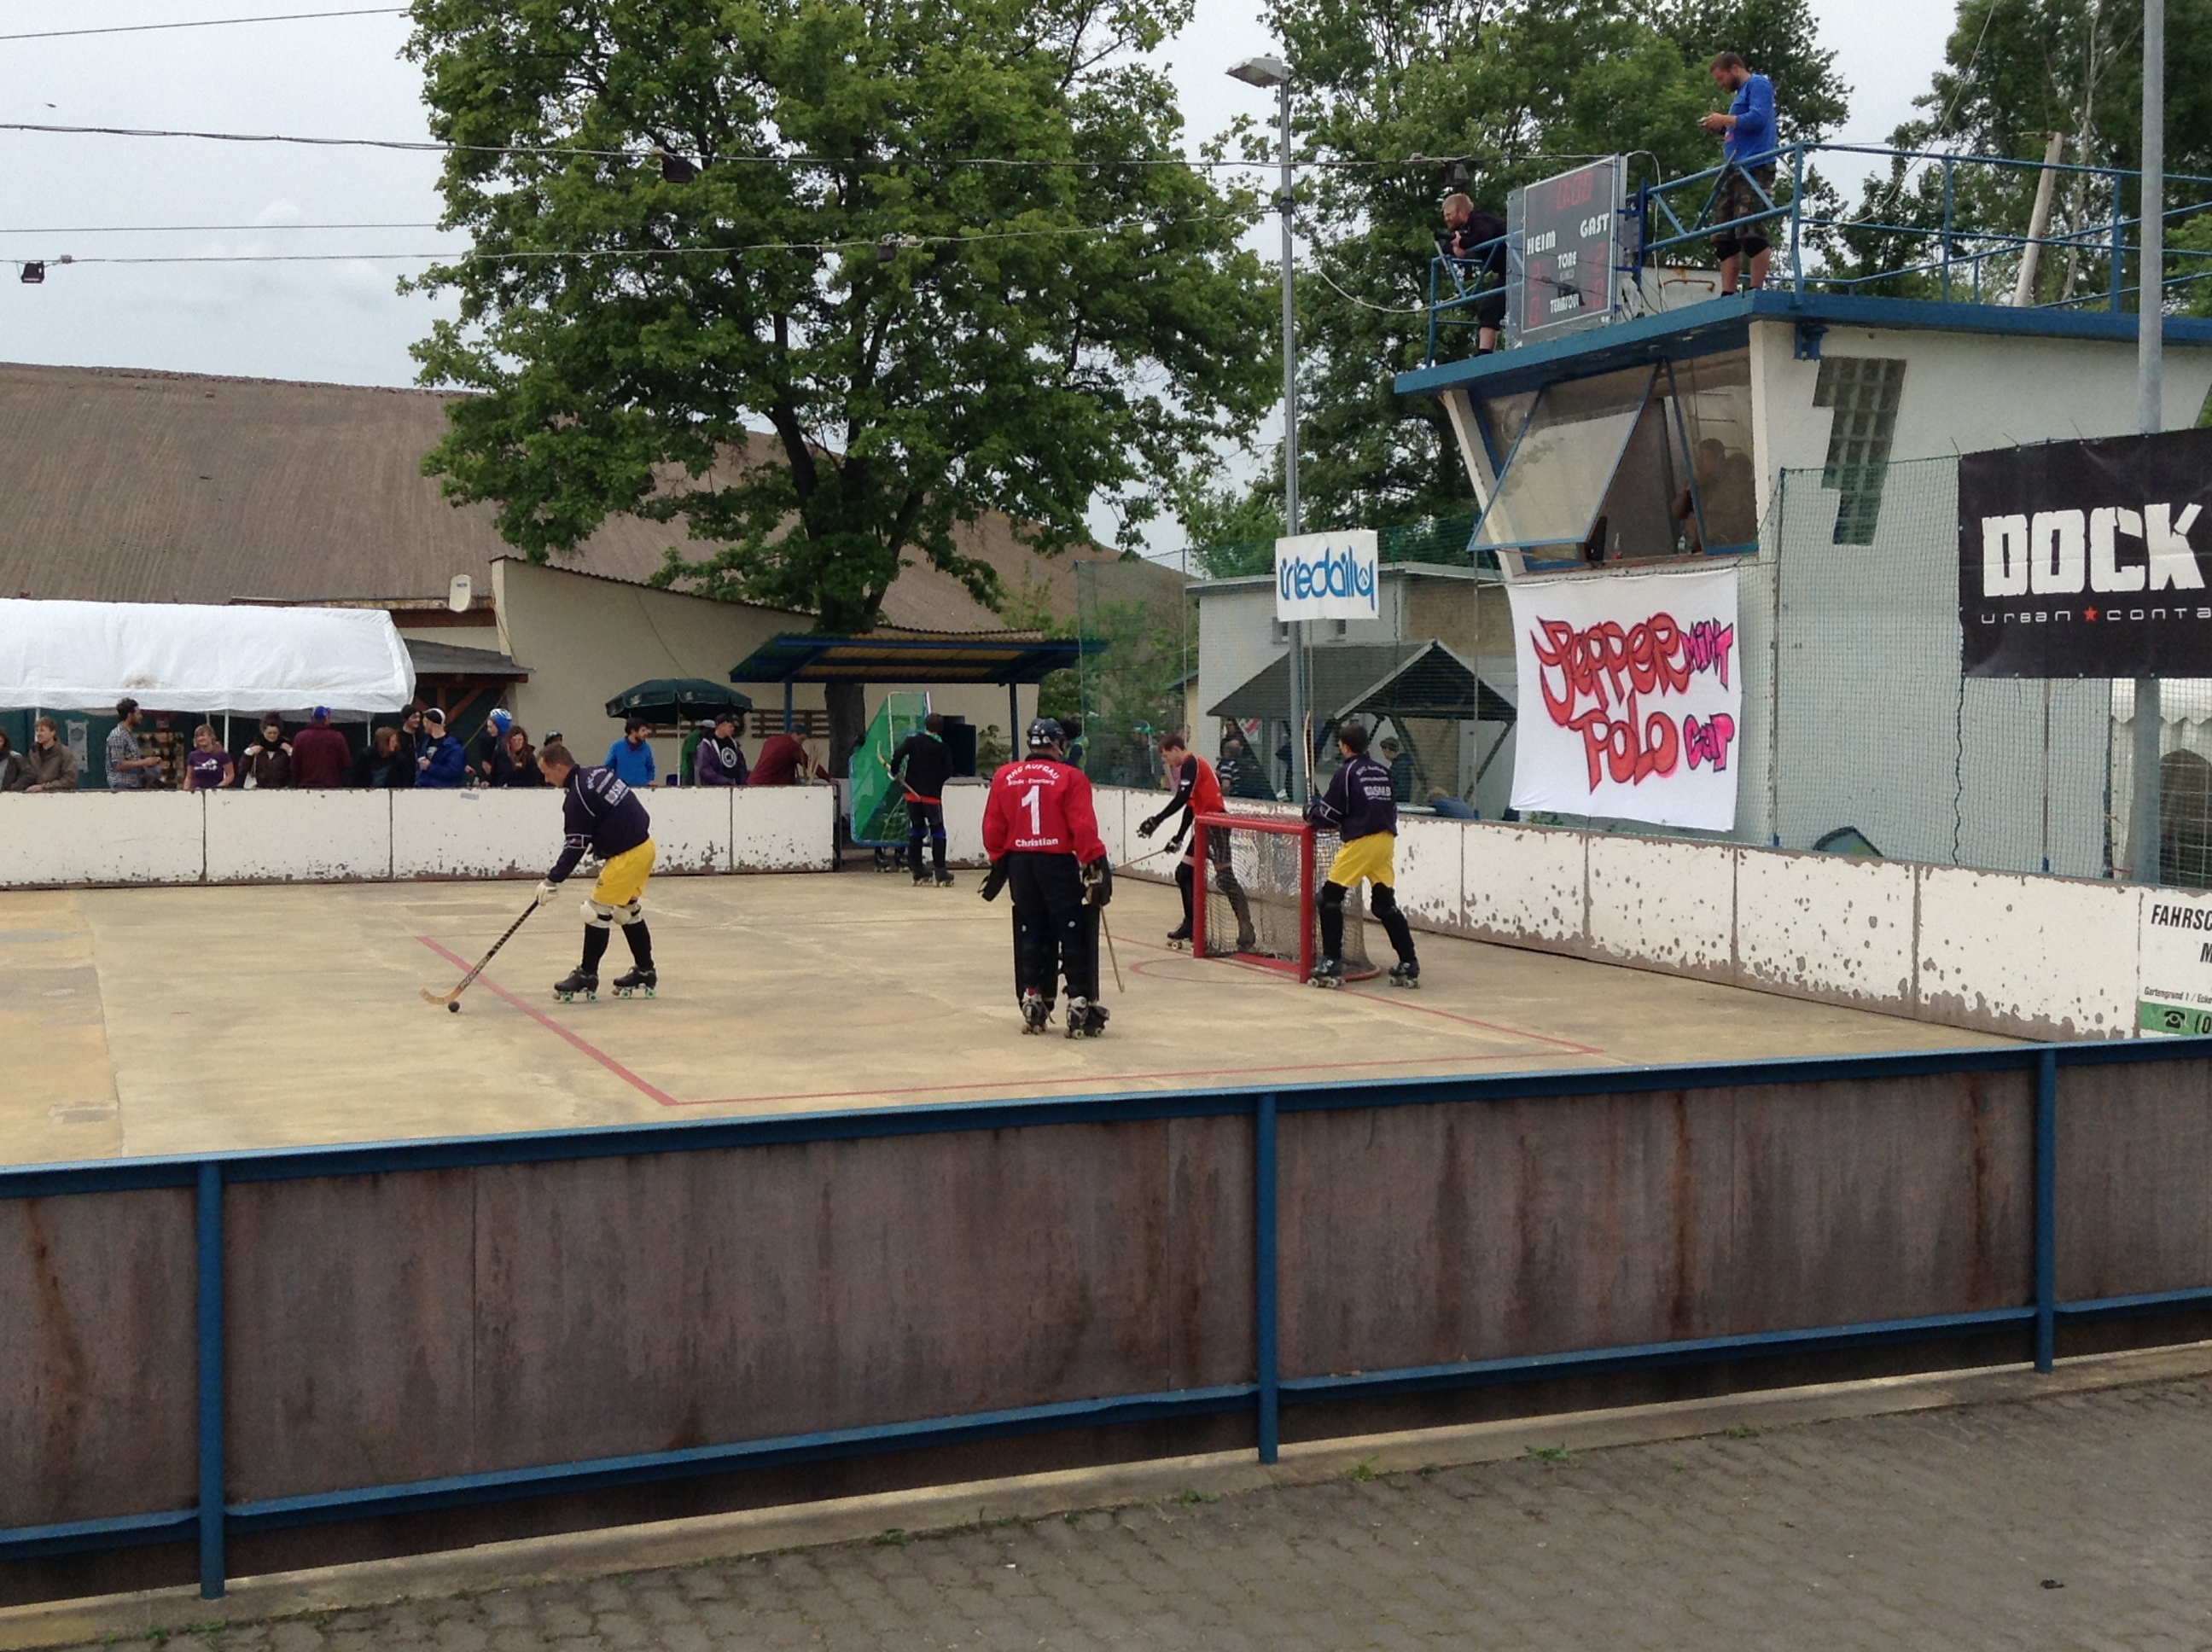 And there was a half-time roller-hockey game!